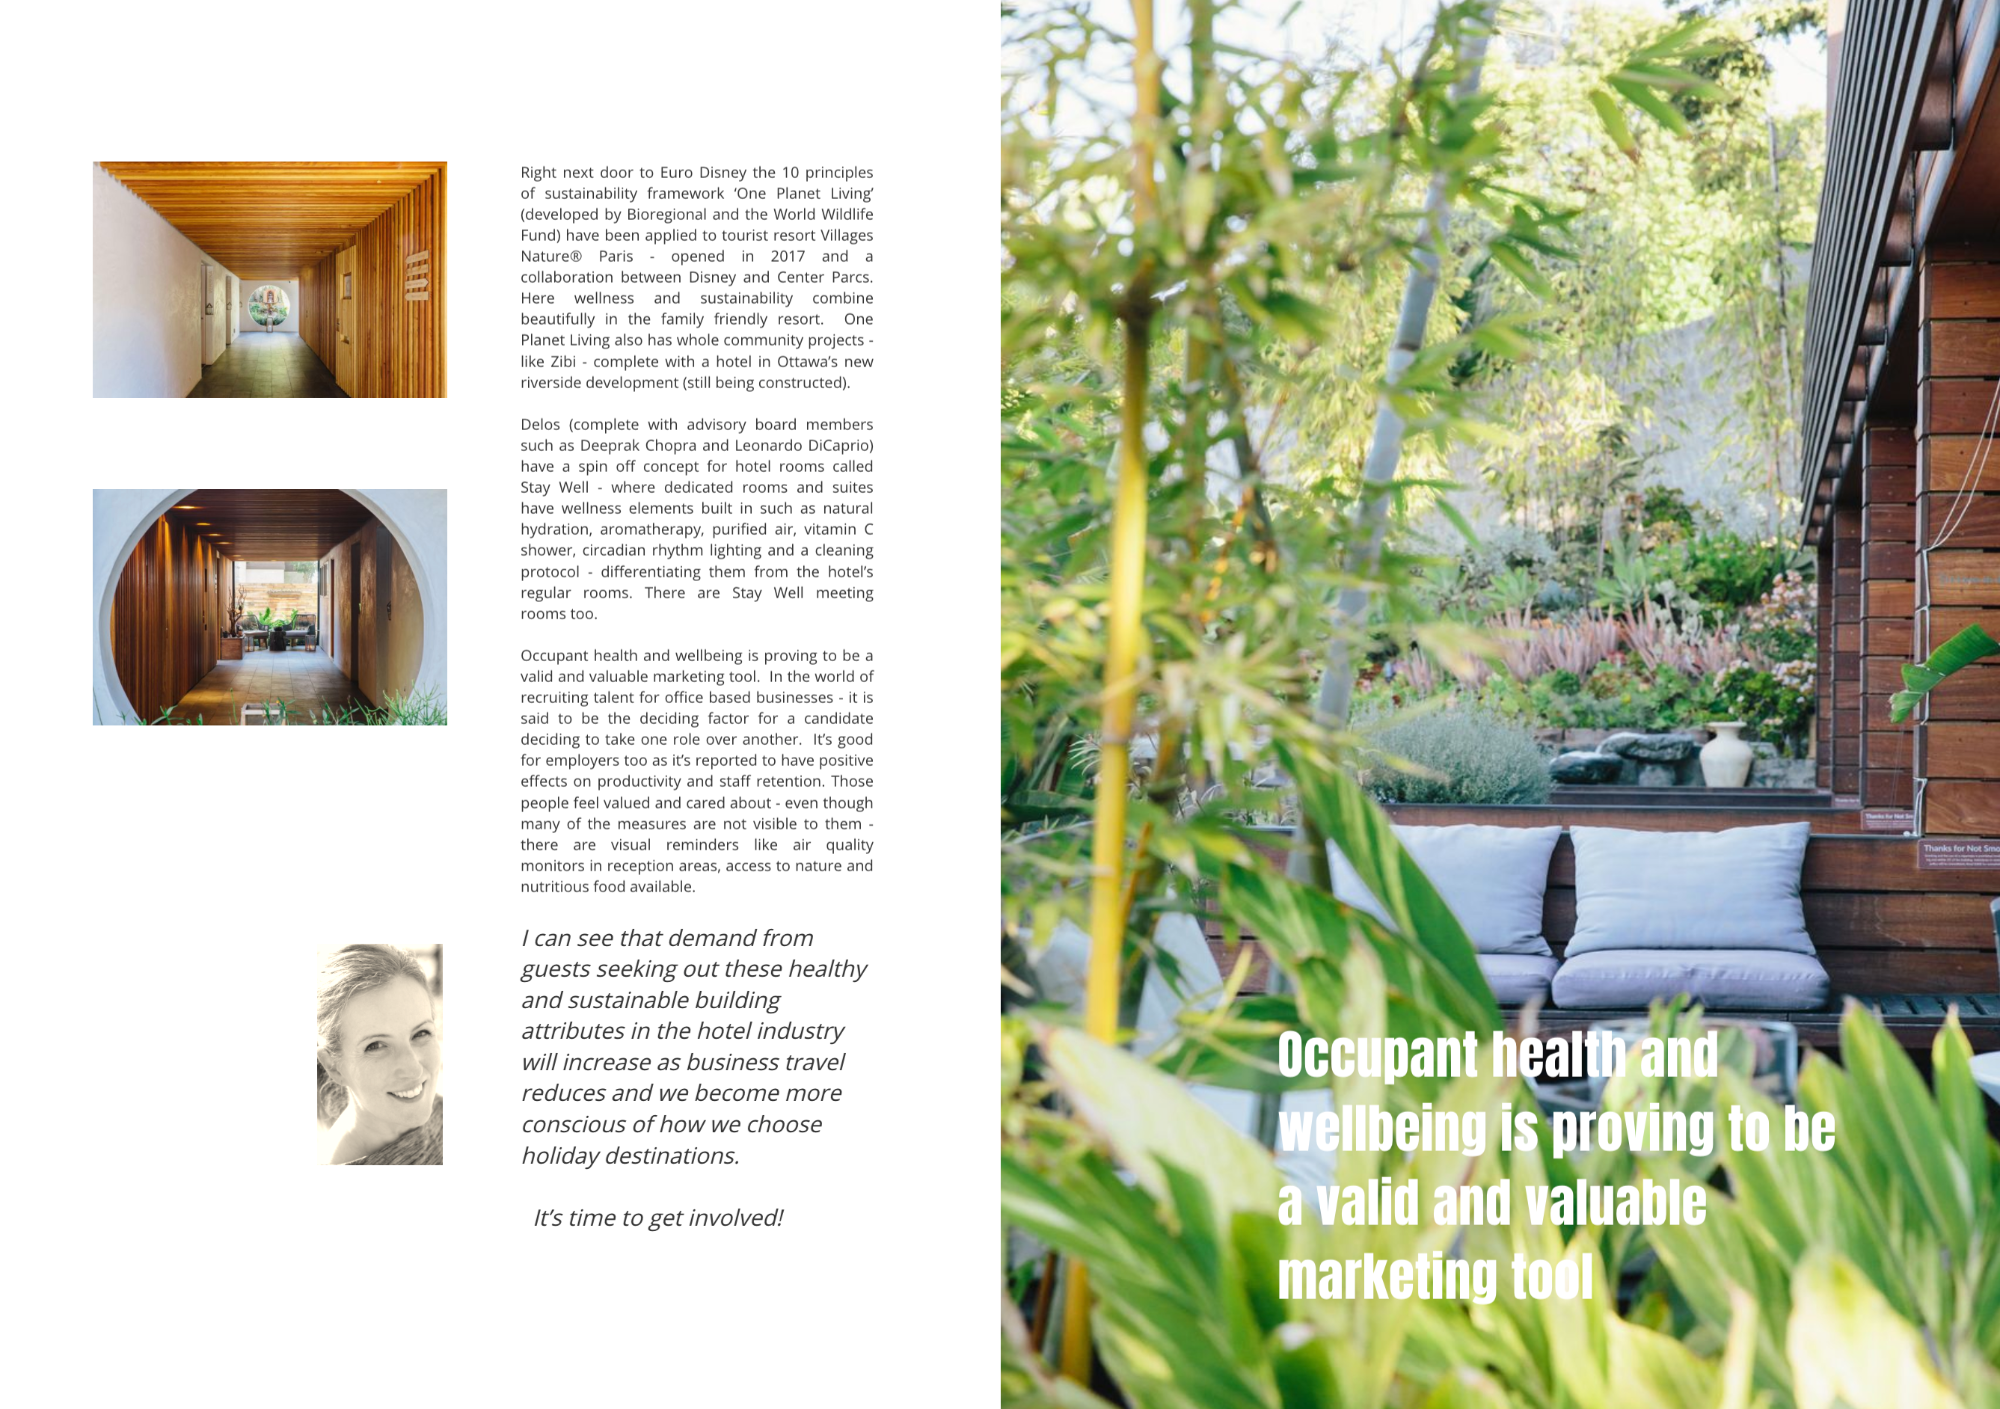 Hotel Property UK issue 2 3-4.png